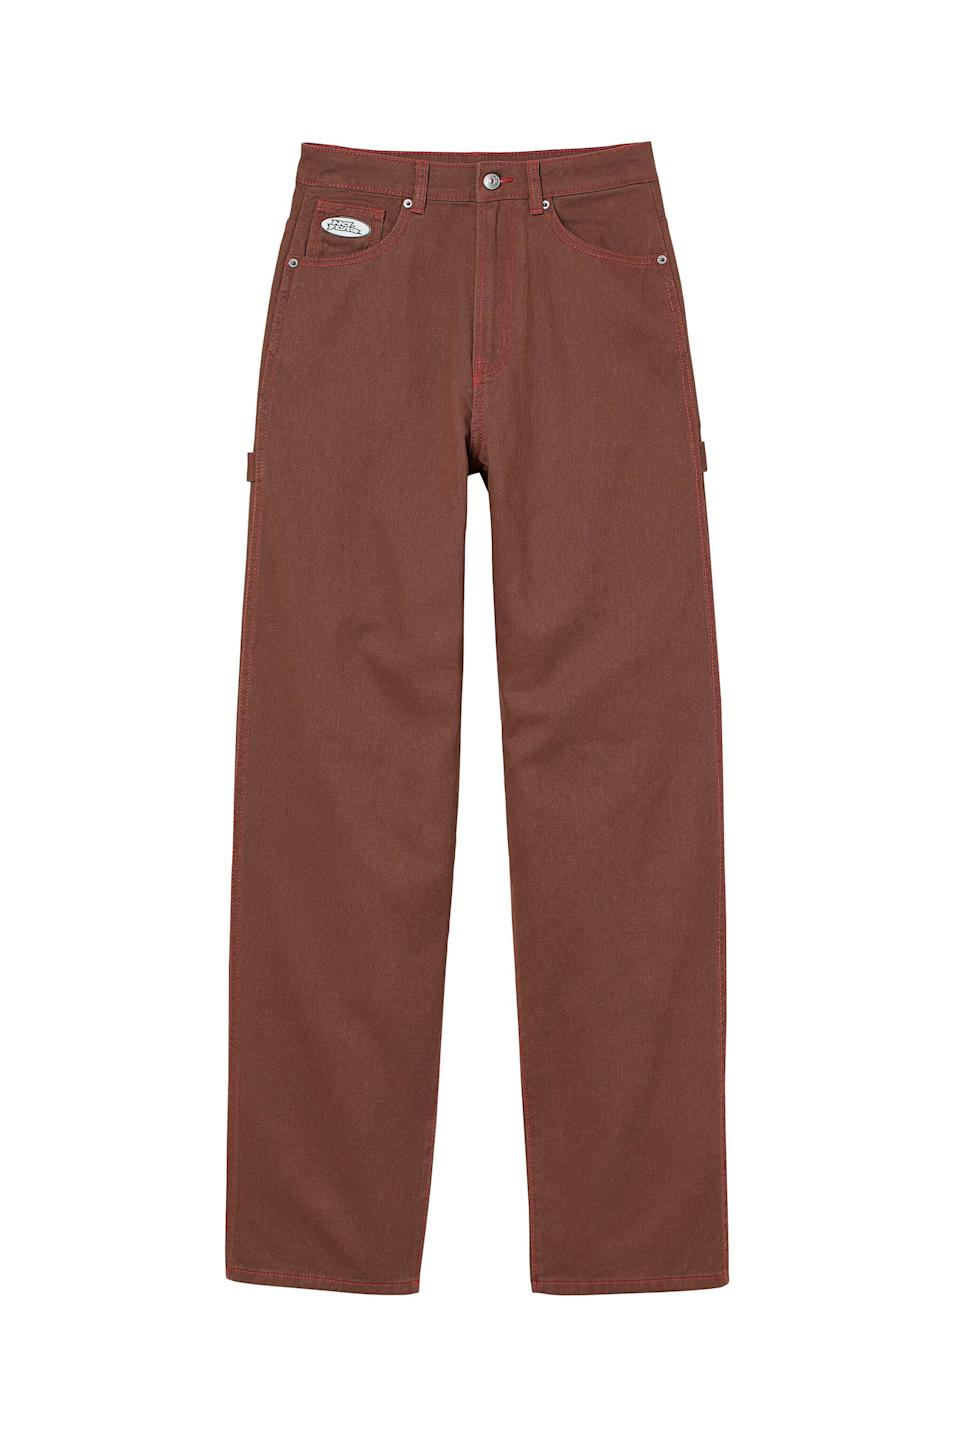 <p>These <span>No Fear x H&amp;M Wide-leg Twill Pants</span> ($25) are exactly what we want to wear this fall. We like them with a white t-shirt and cool jacket.</p>